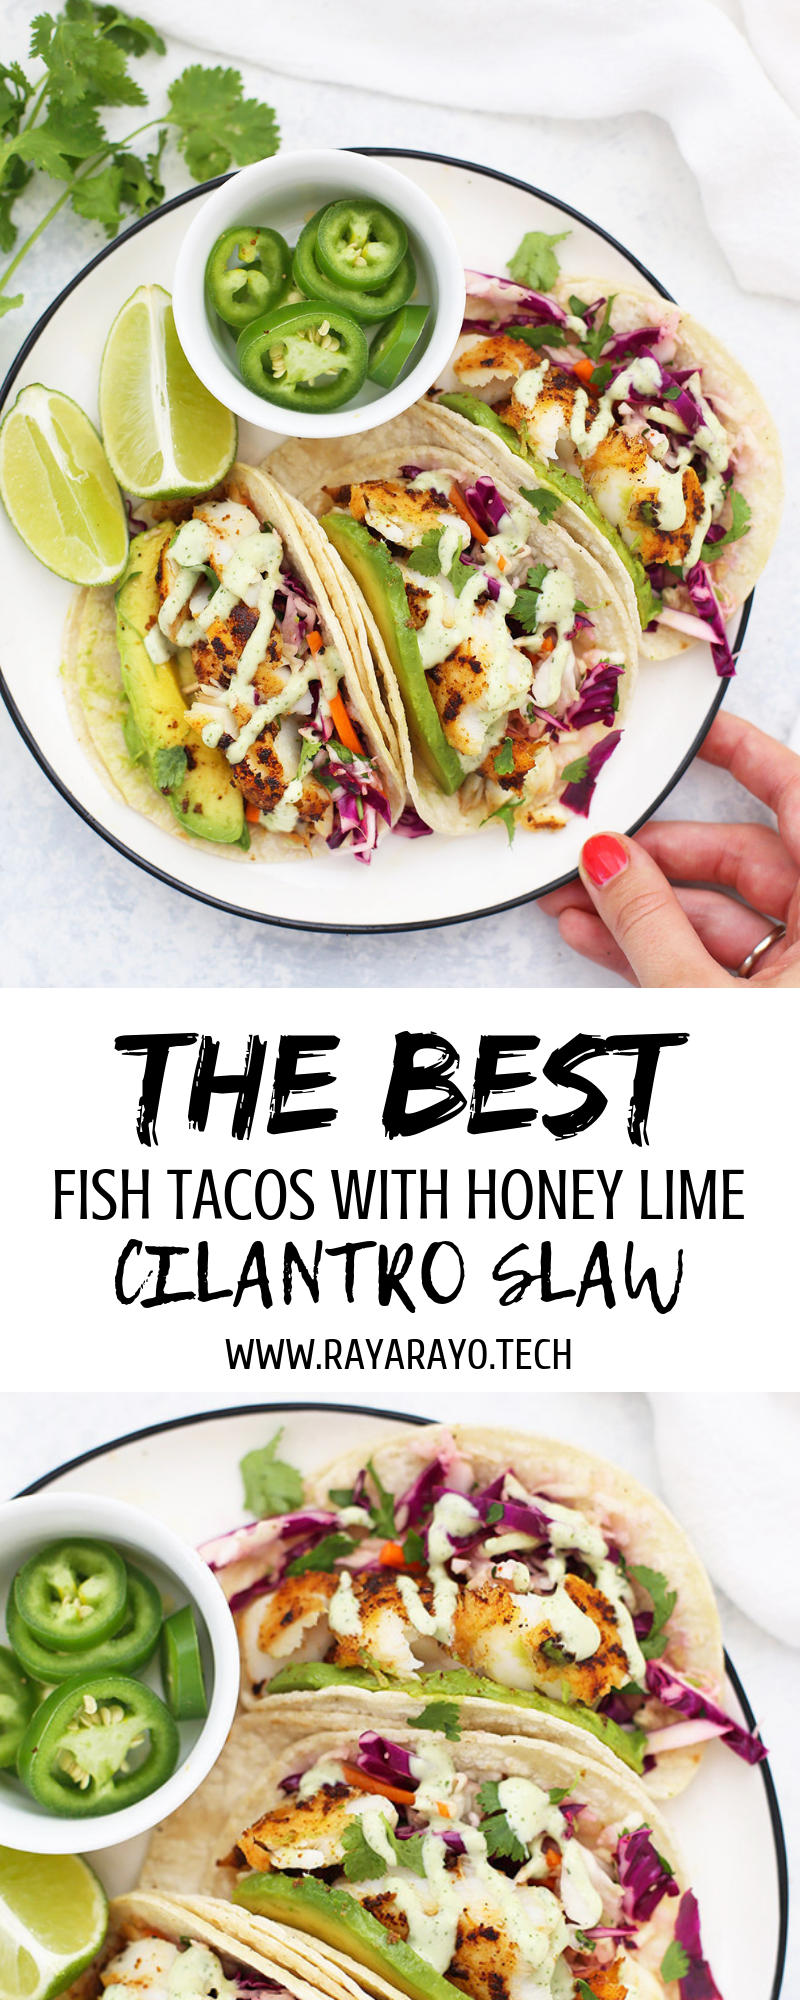 (THE BEST) FISH TACOS WITH HONEY LIME CILANTRO SLAW #cilantrolimeslaw